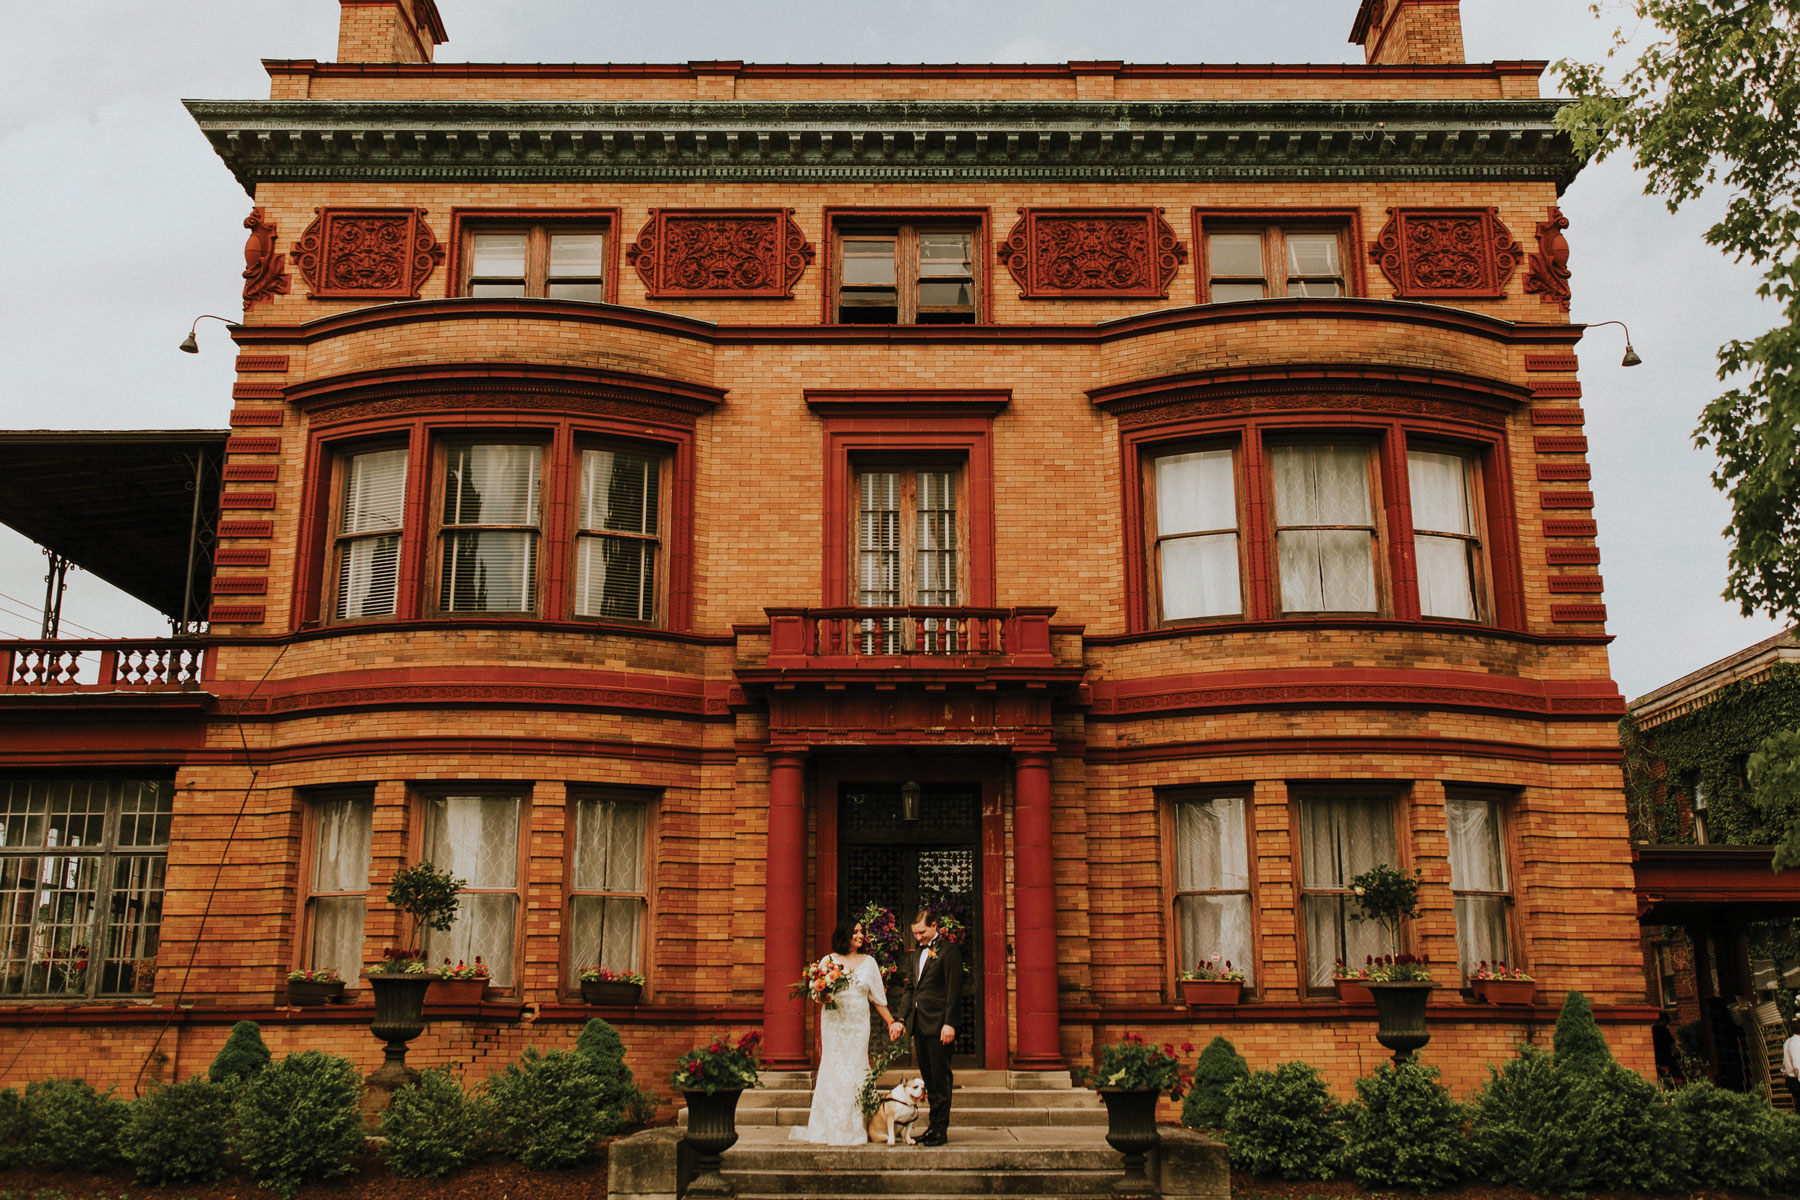 Karen + Adrian - A private historic mansion in Toledo's Old West End was the perfect stage for this unique and unforgettable wedding.